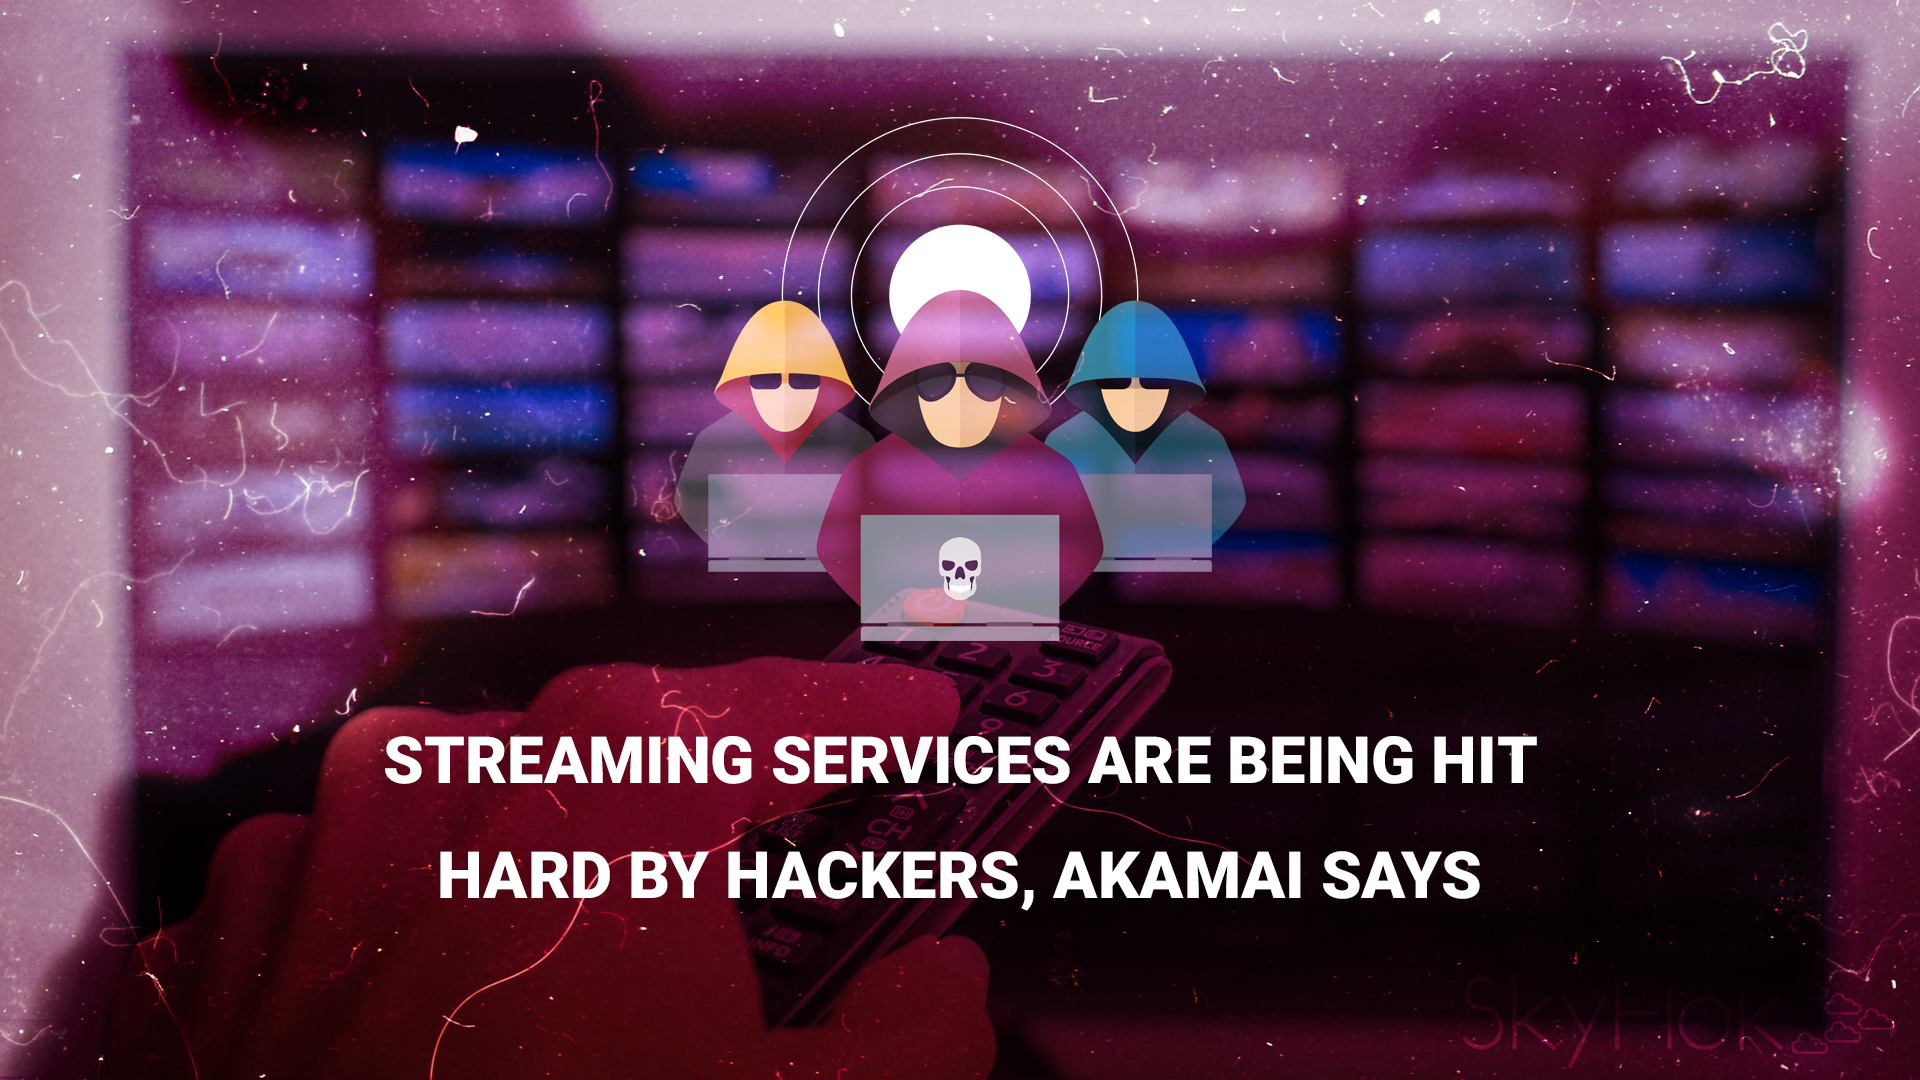 Streaming services are being hit hard by hackers, Akamai says